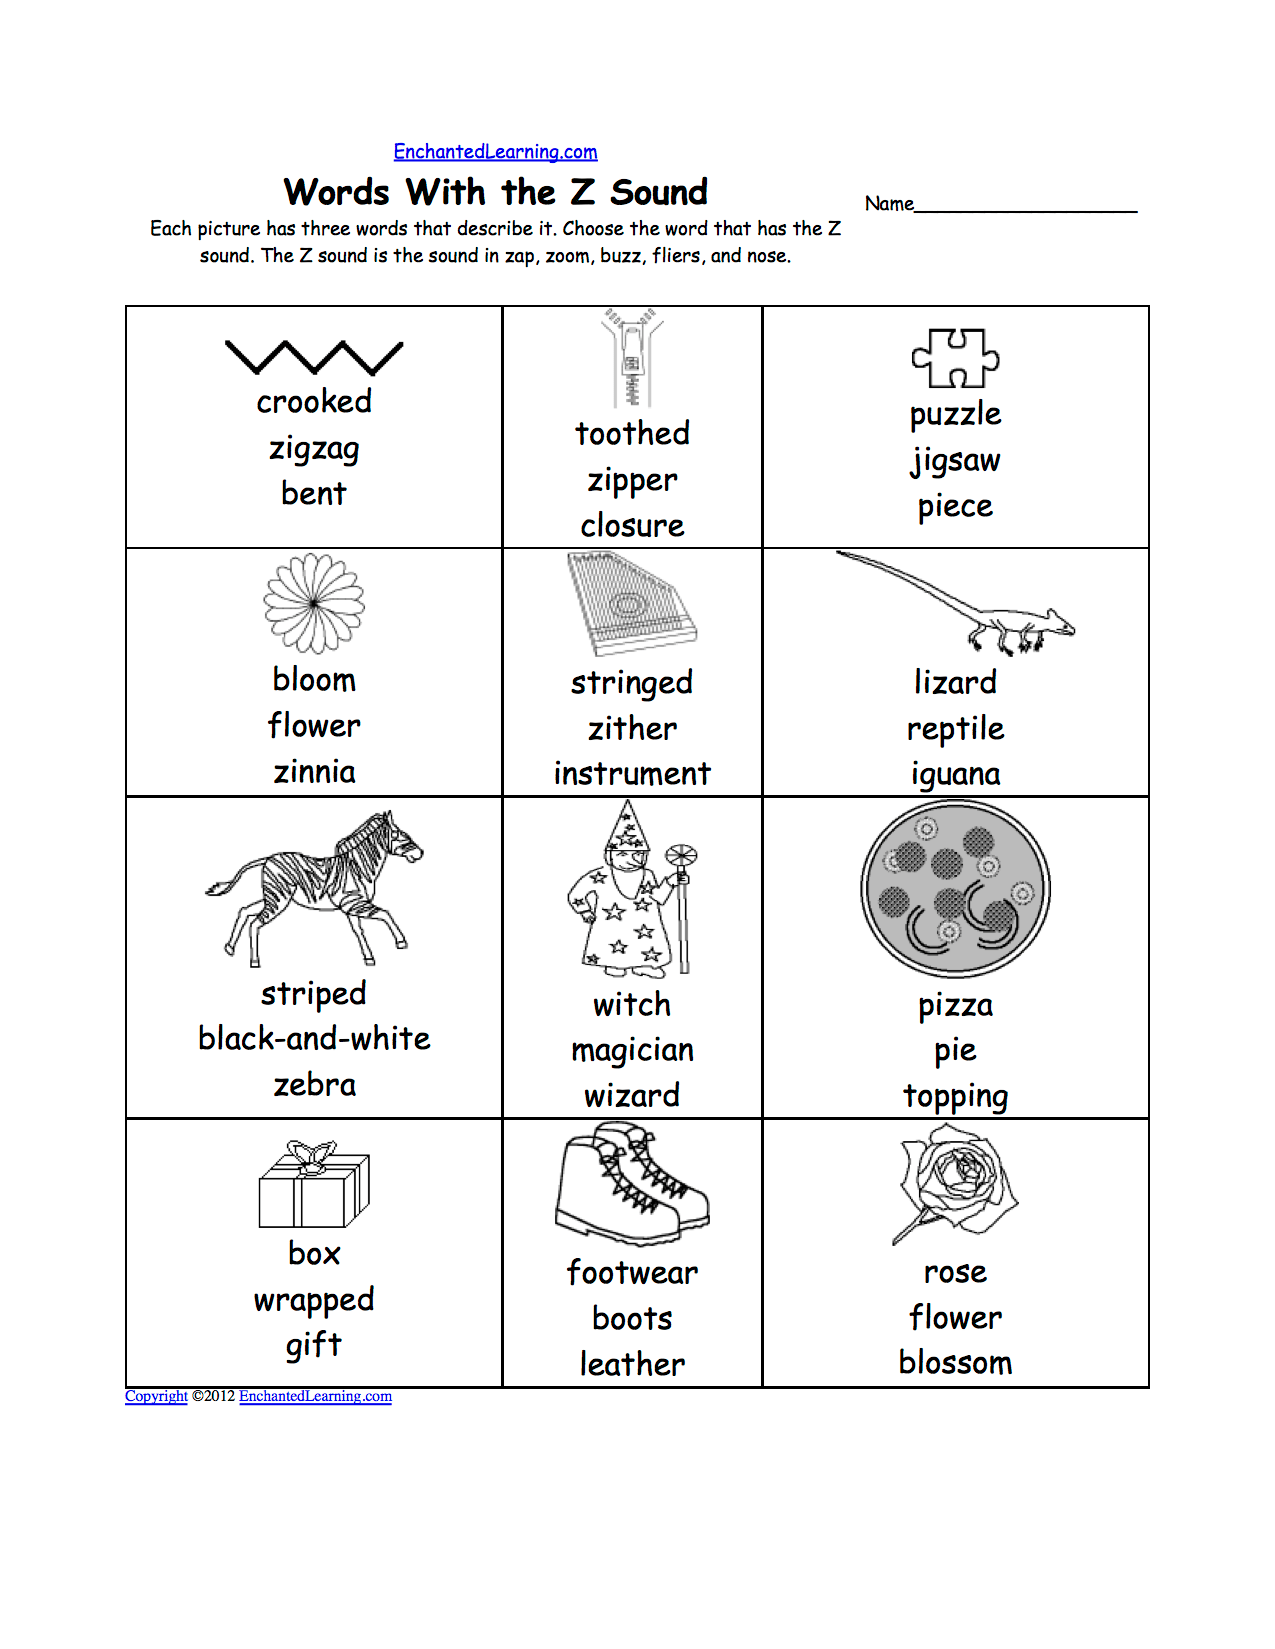 Phonics Picture Dictionary Activities And Worksheets To Print